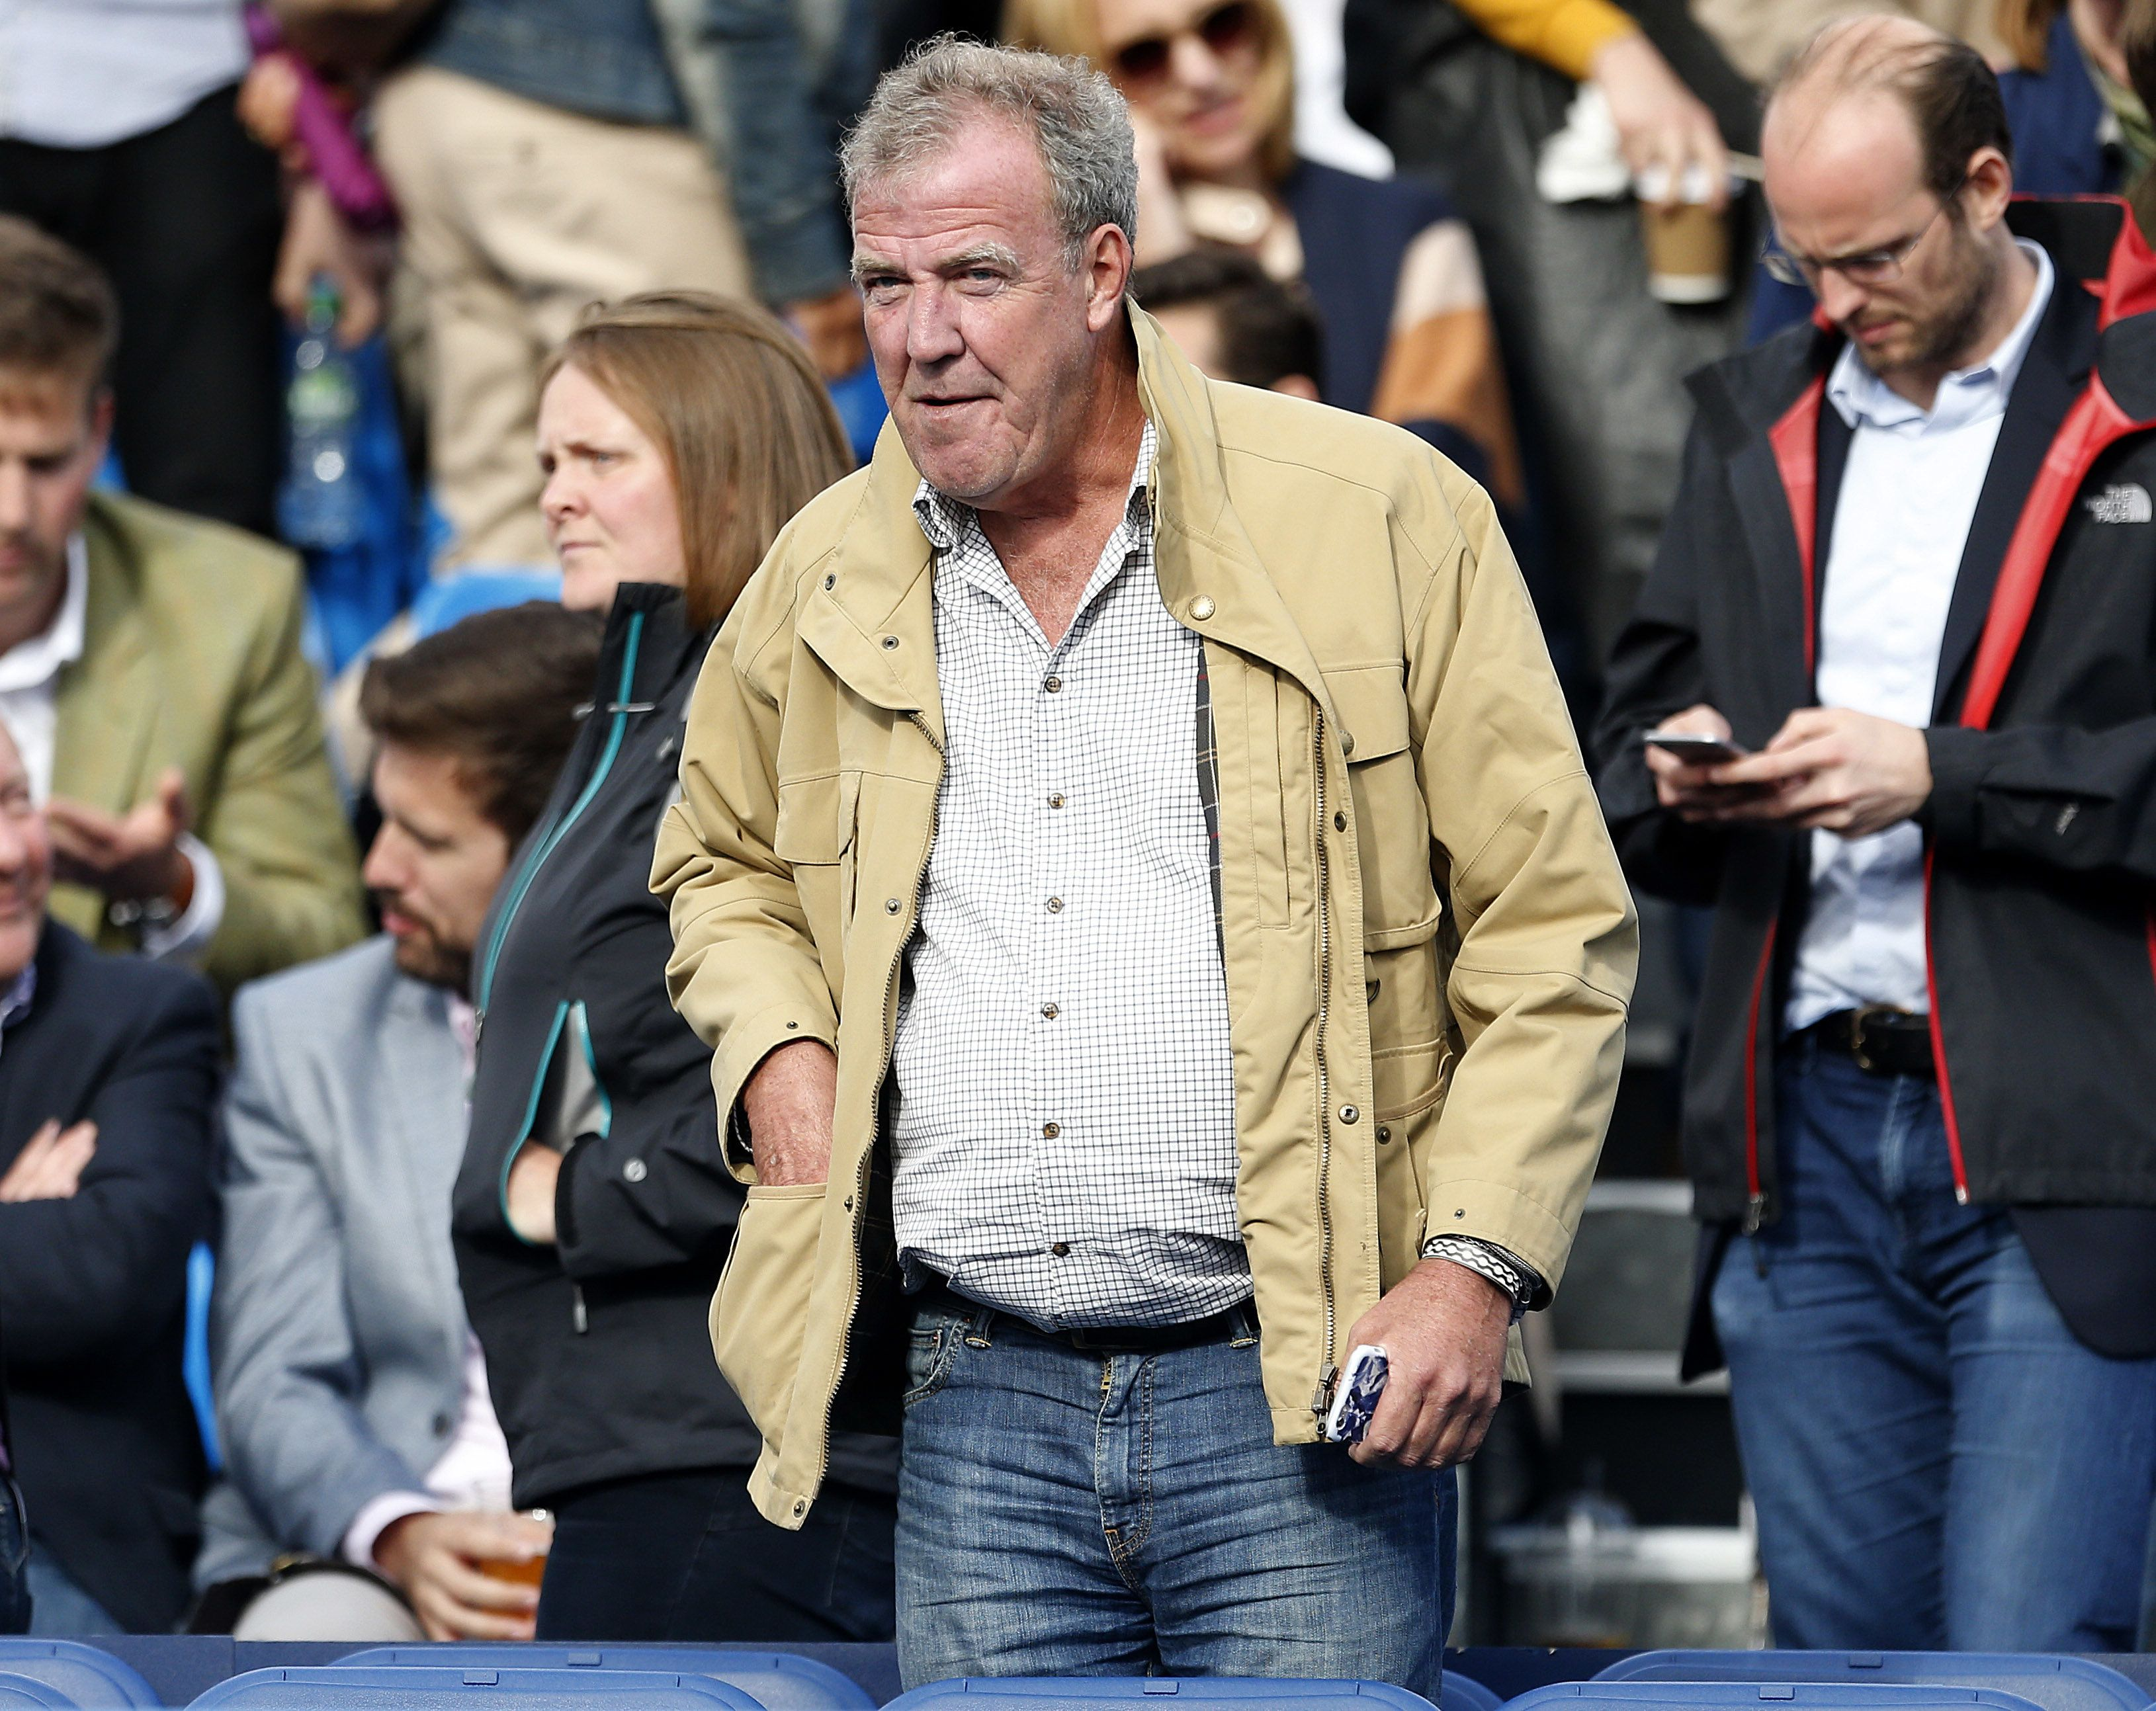 Jeremy Clarkson Has Big Plans For New Show's Theme